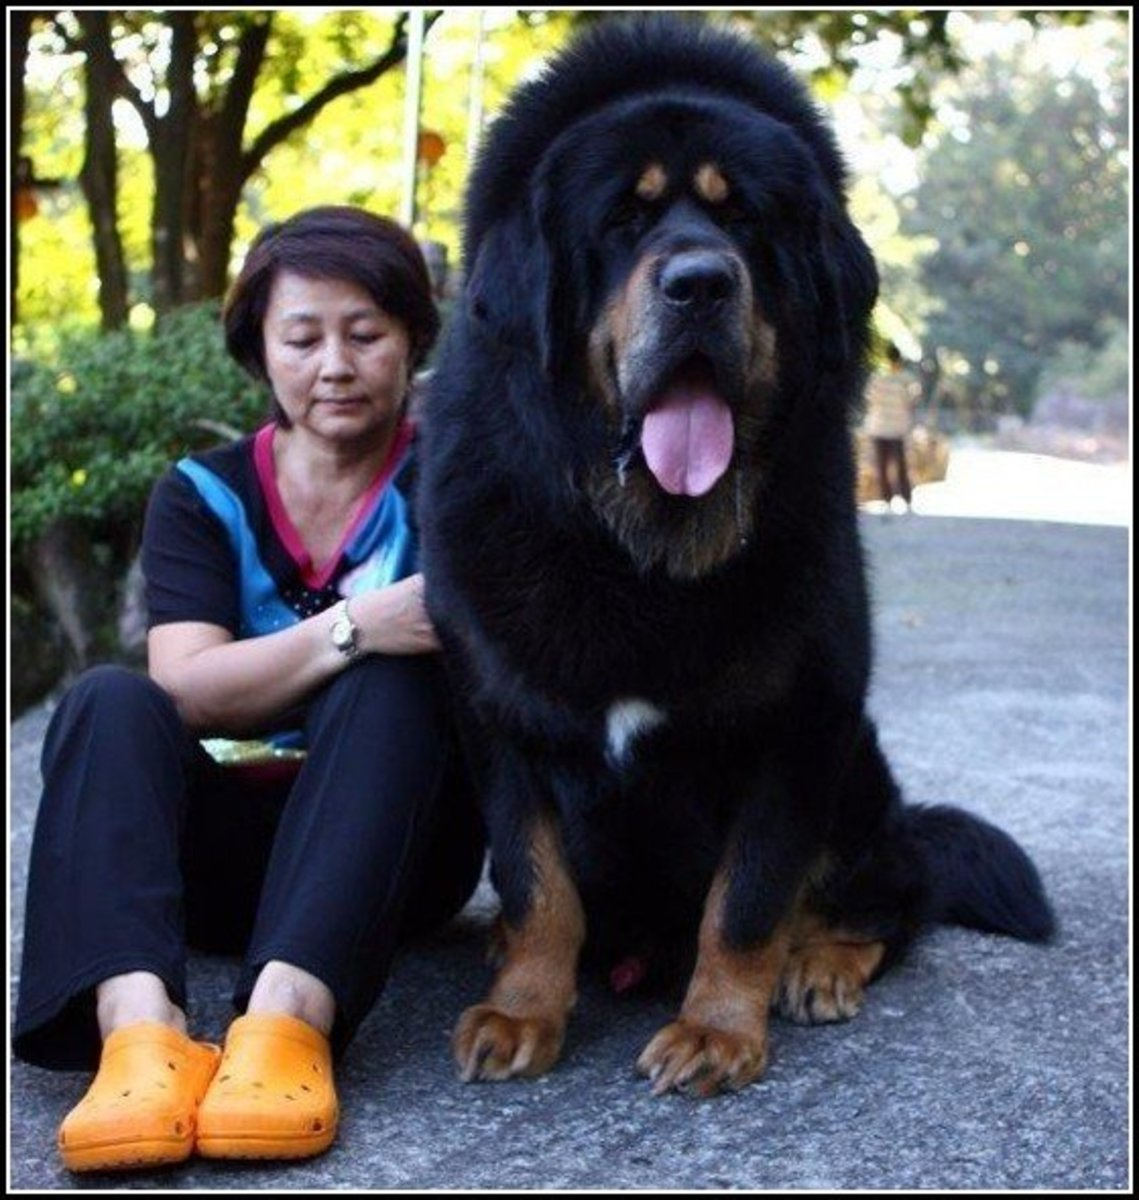 Some large dogs can even match up to a human in terms of total size.